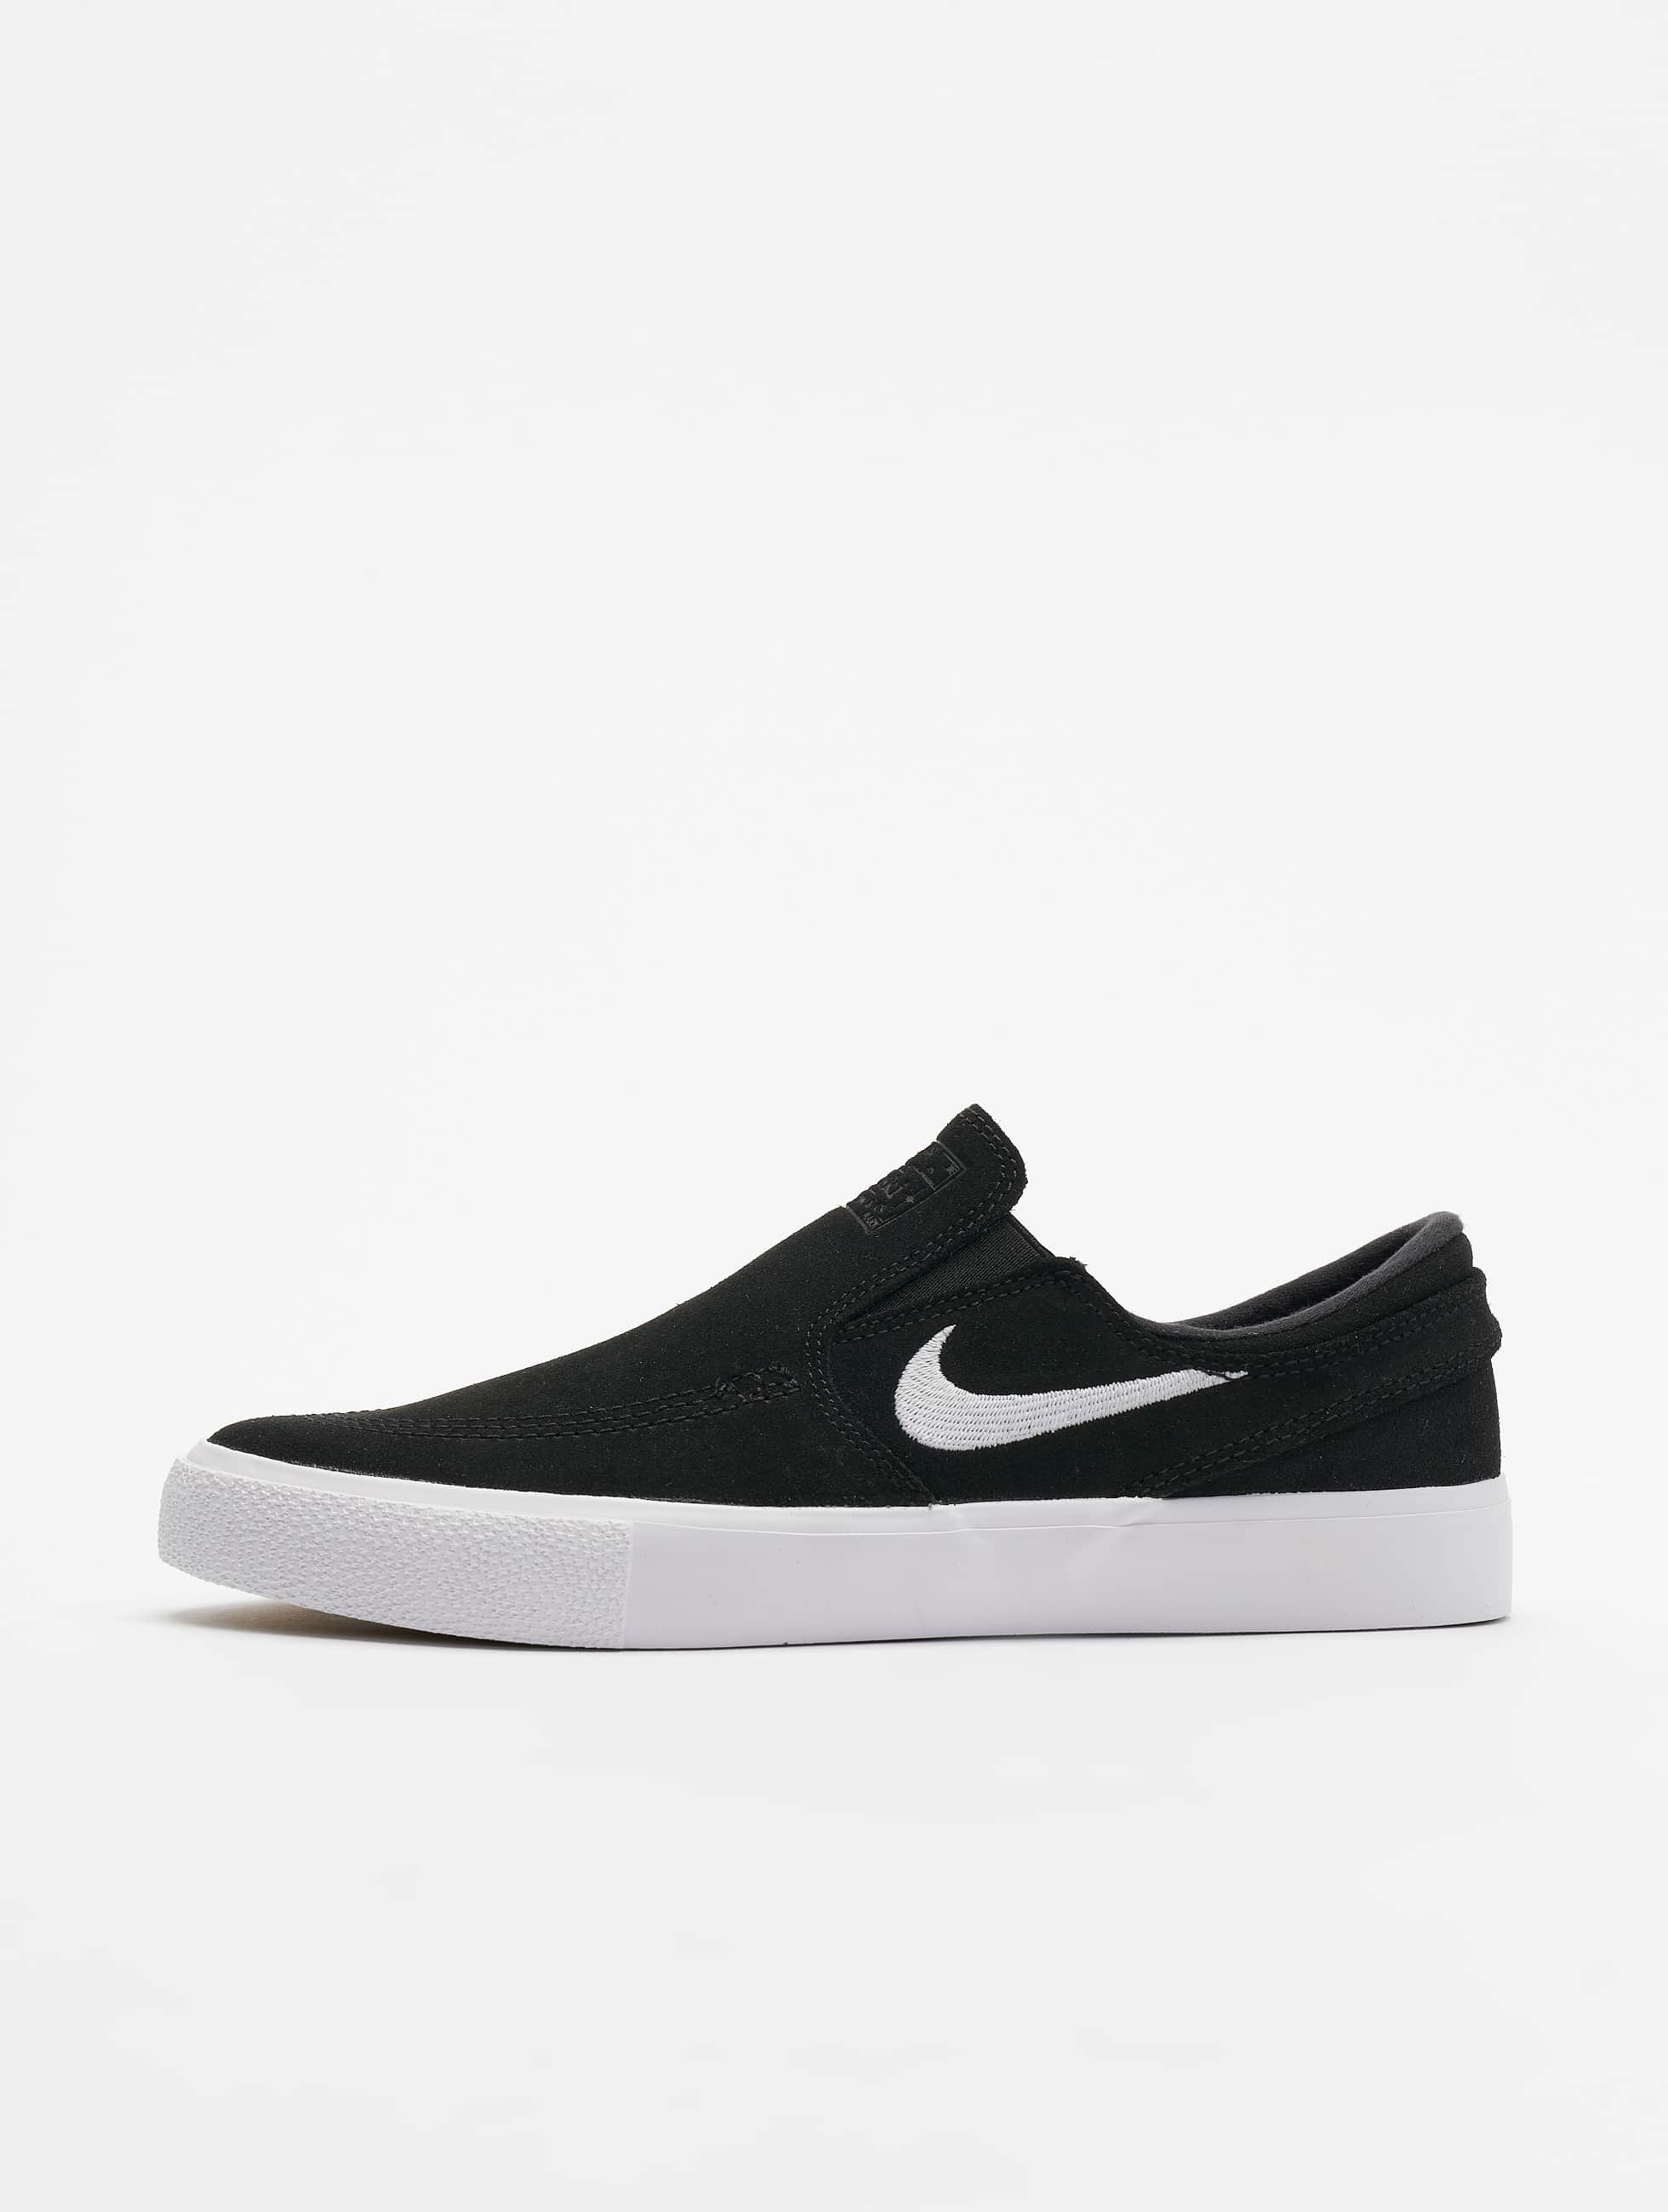 new product 5e12b b567c Nike SB Zoom Janoski Slip Sneakers Black/White/White